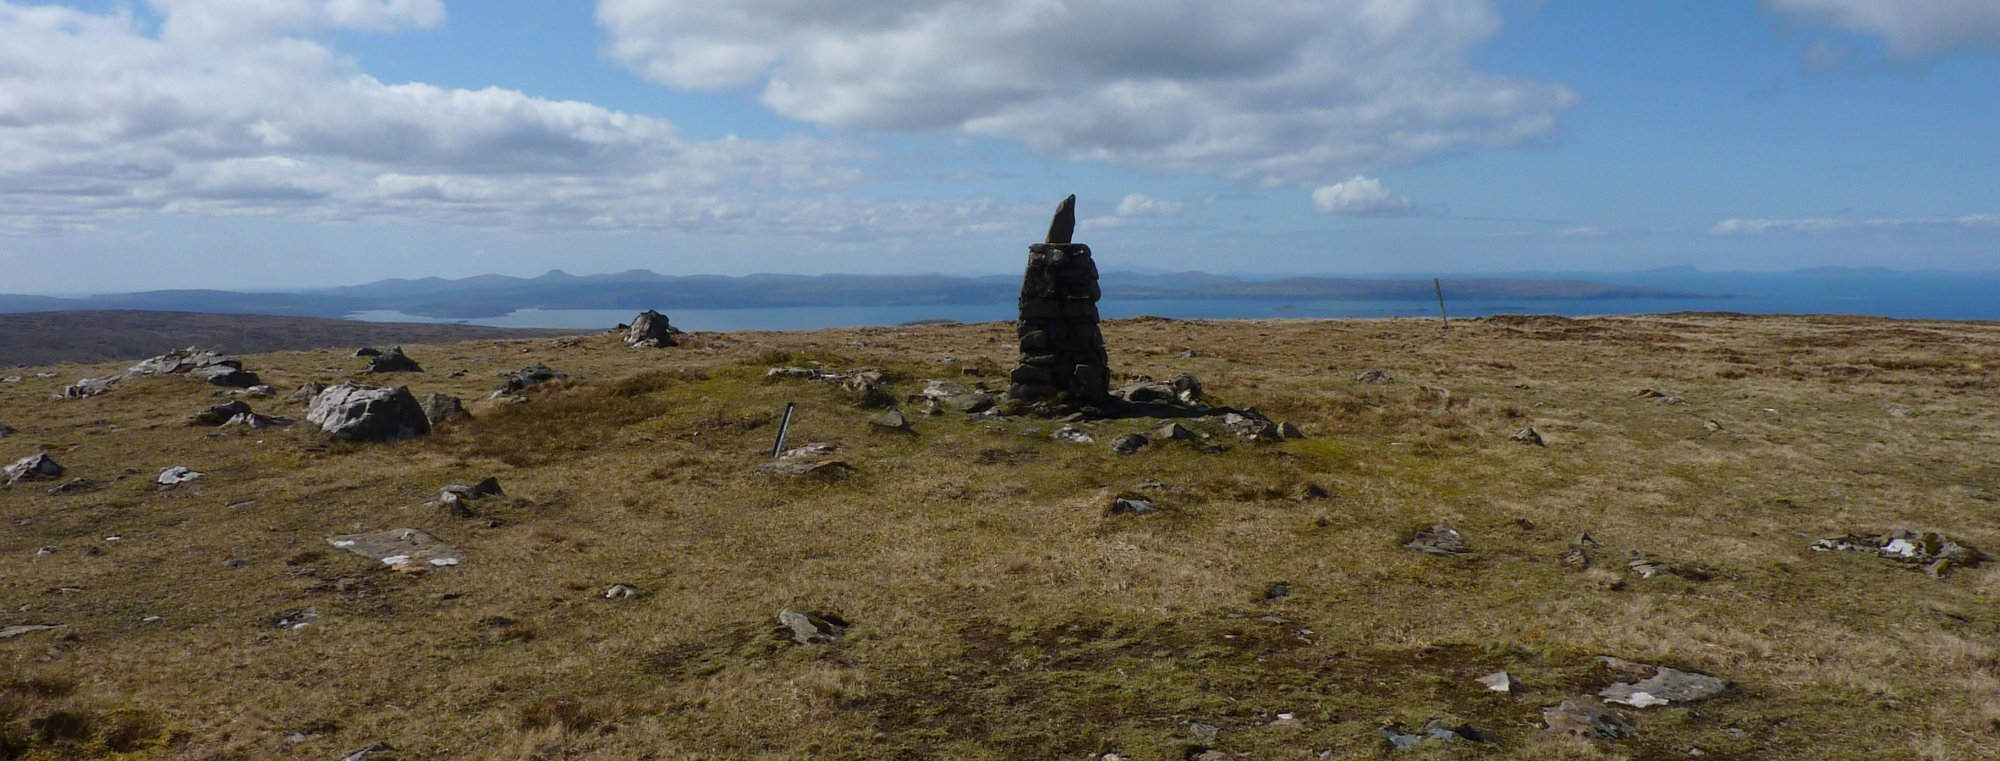 Approaching the Quiraing trig point on Meall na Suiramach